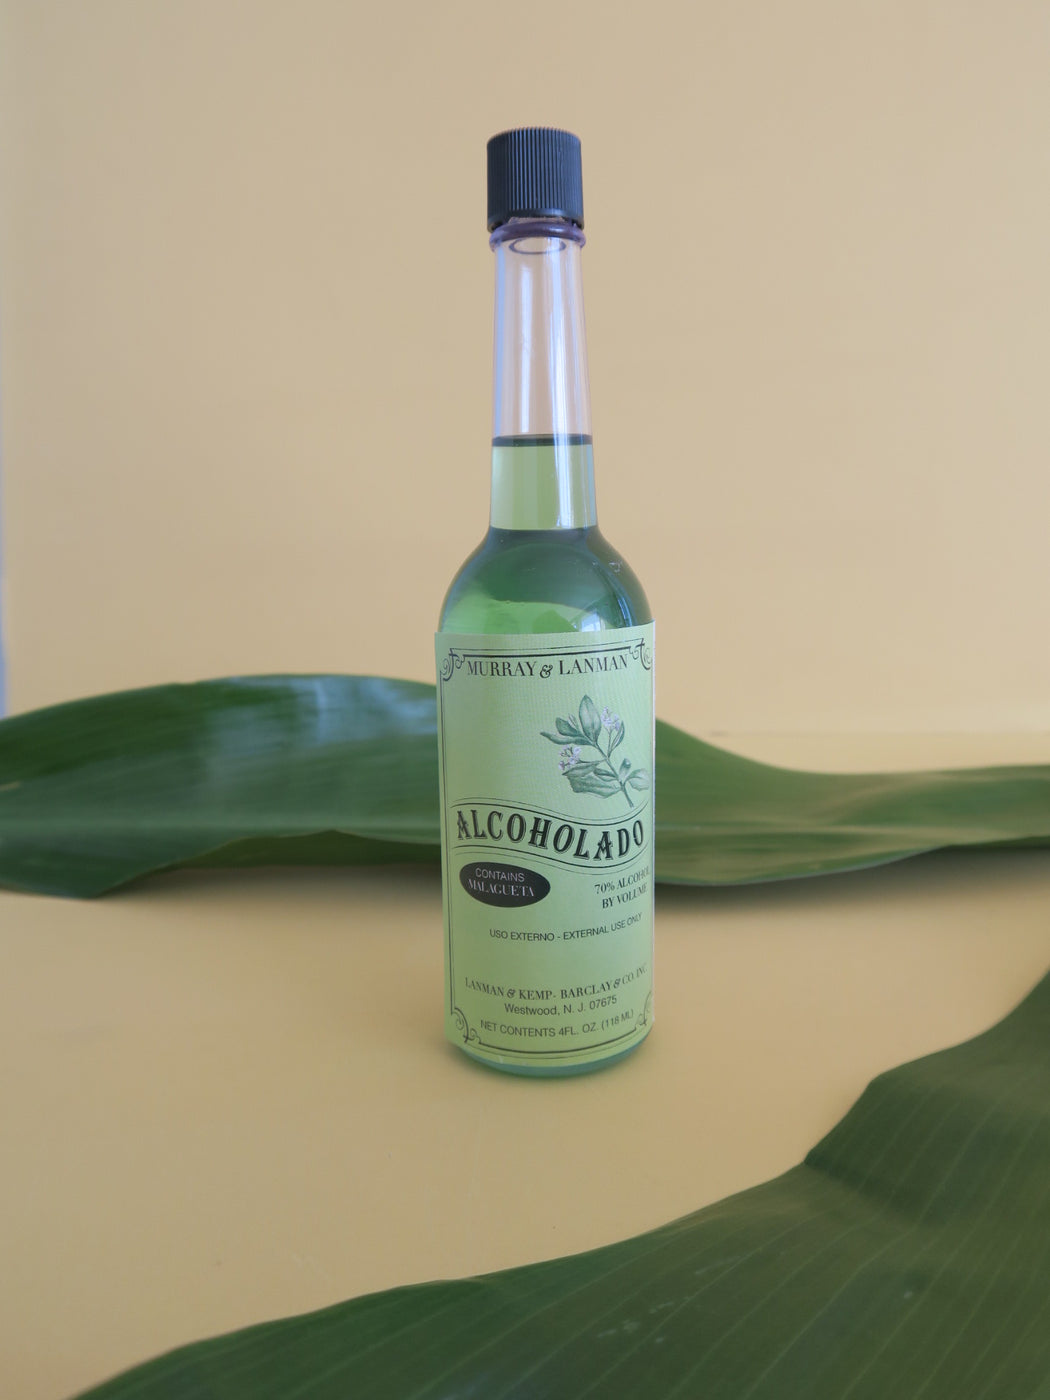 Alcoholado Cologne